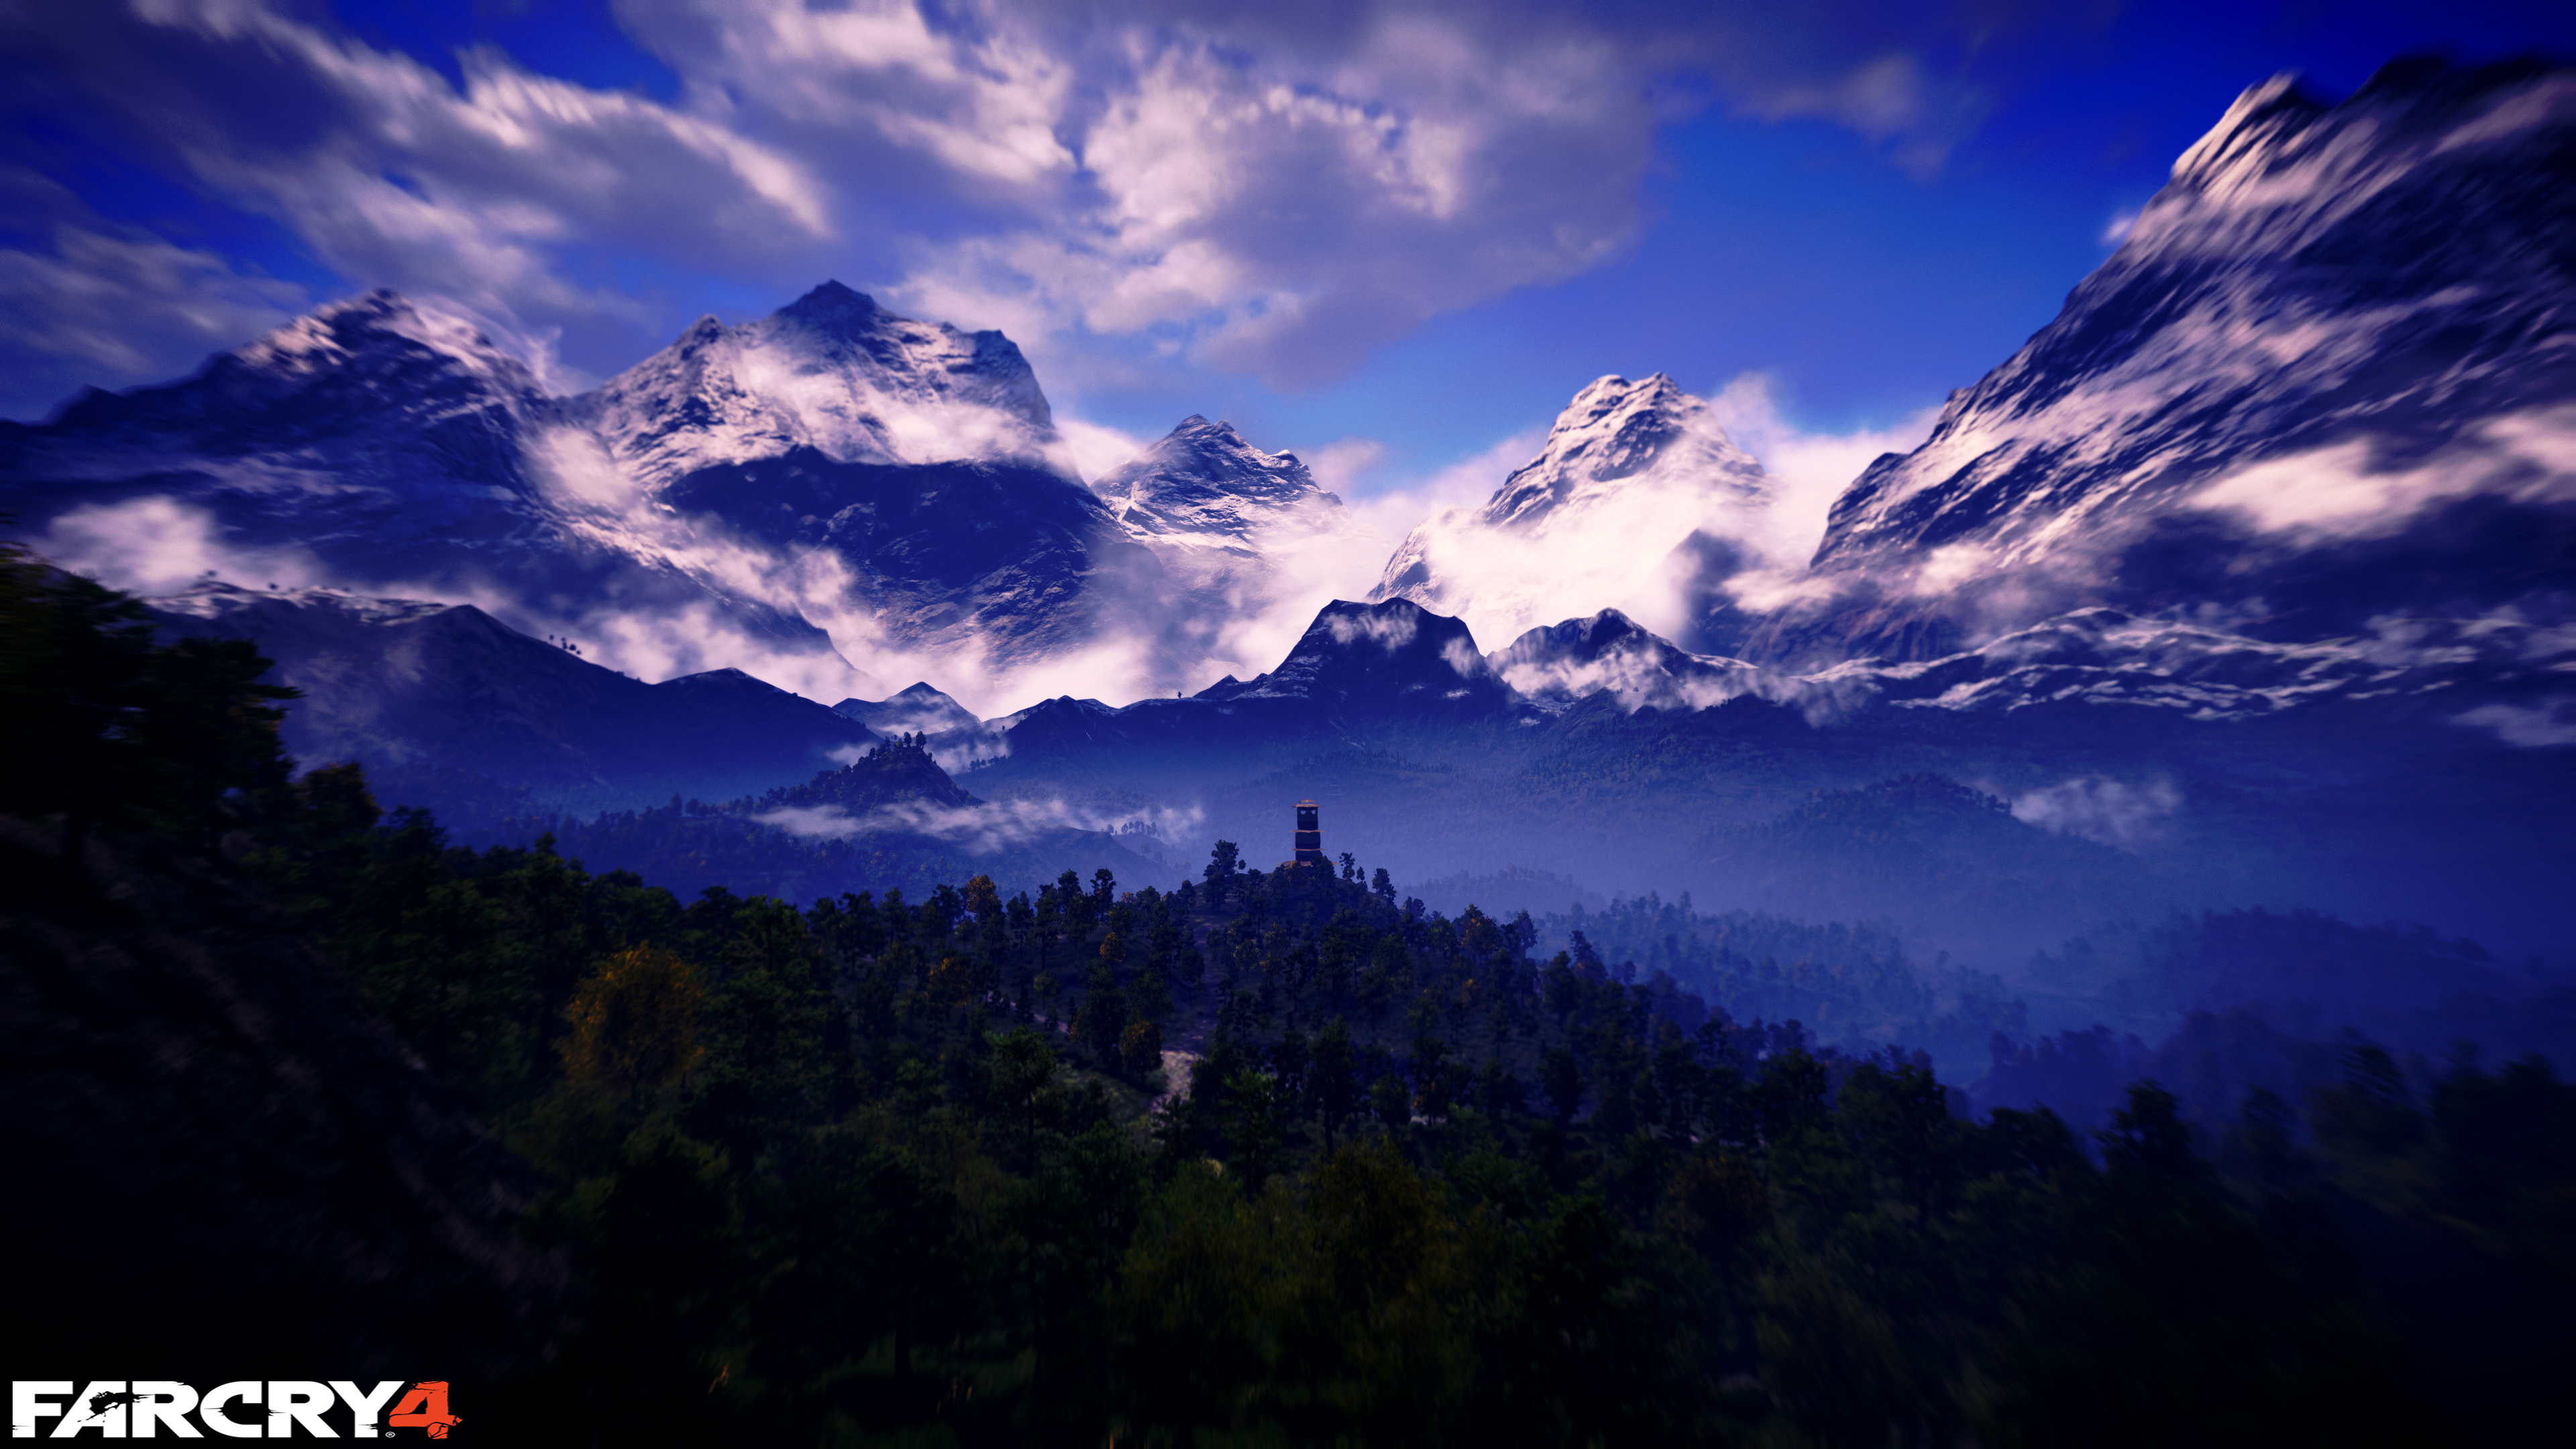 Hd Quote Wallpapers For Windows 10 Free Download Far Cry 4 Wallpaper 4k 4k Ultra Hd Tapeta And Tło